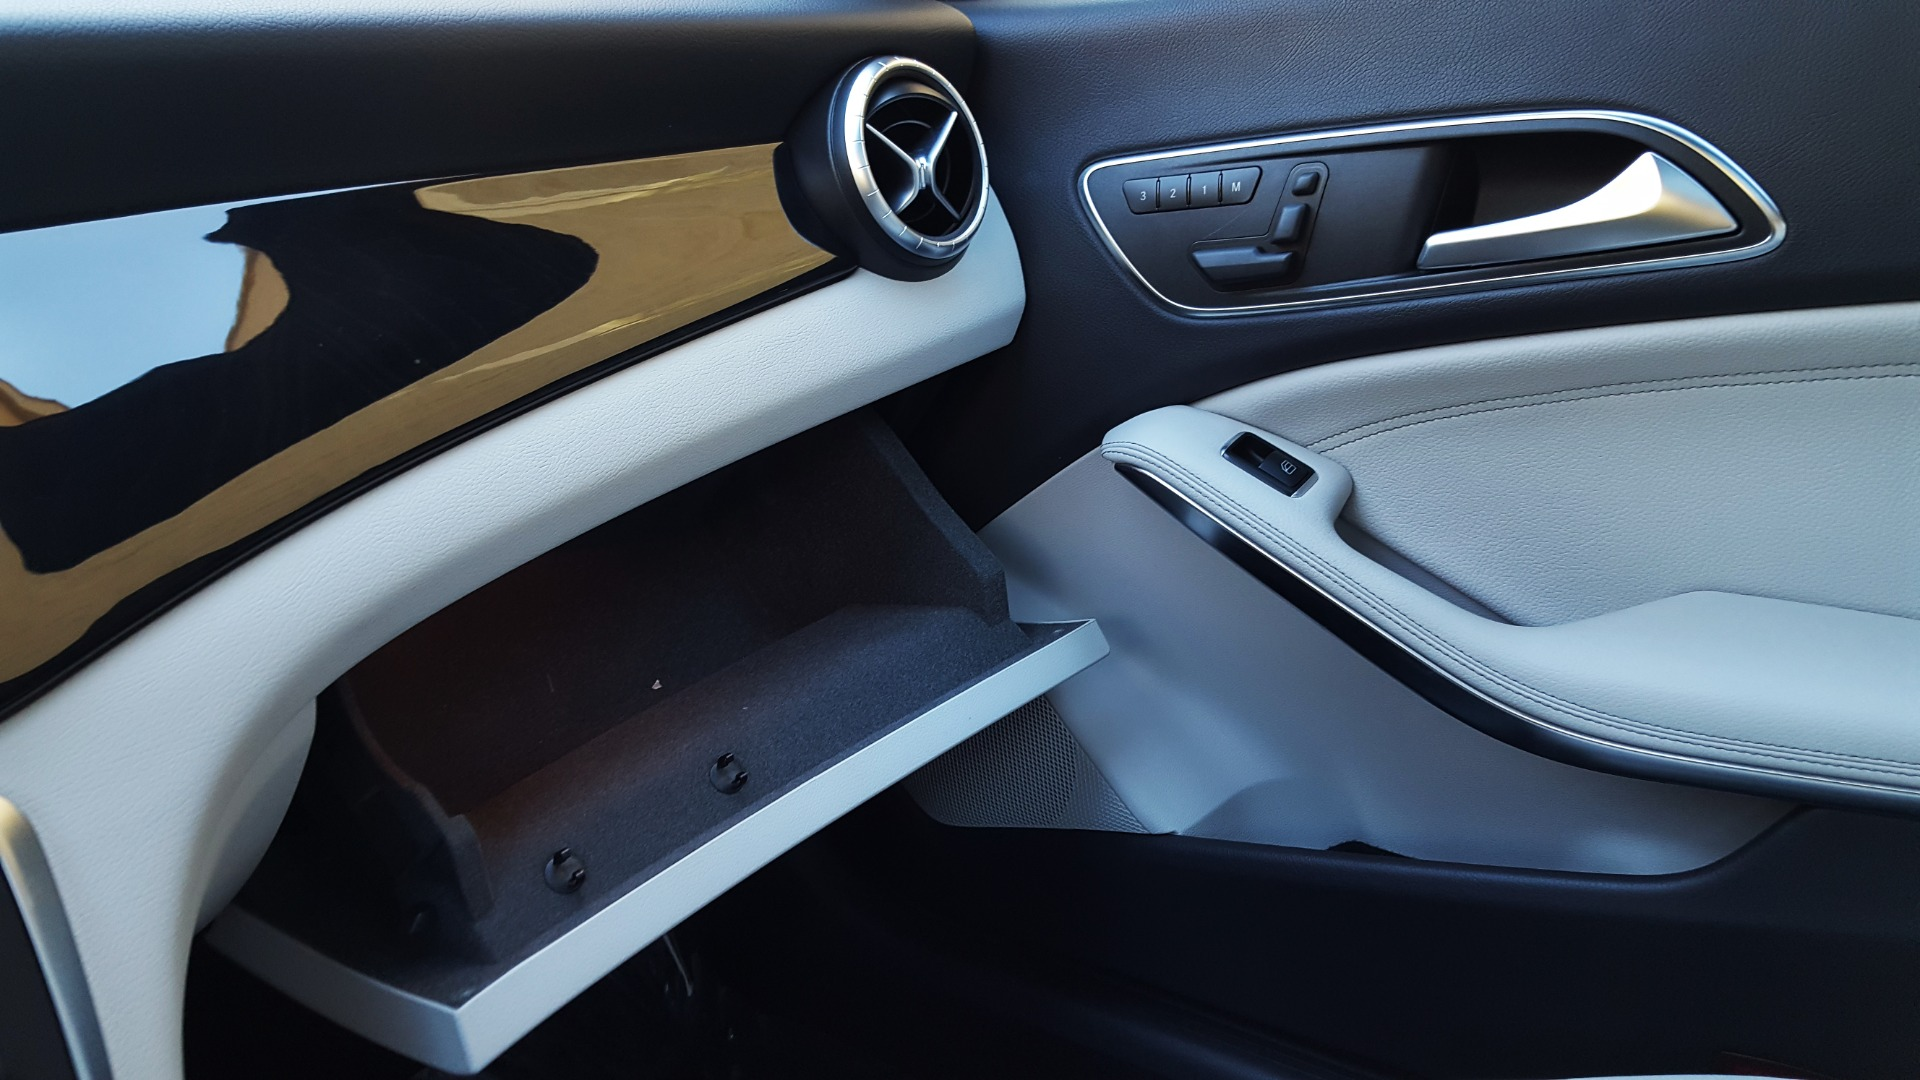 Used 2014 Mercedes-Benz CLA-CLASS CLA 250 / NAV / PANO-ROOF / BLIND SPOT ASSIST / XENON HEADLIGHTS for sale $19,995 at Formula Imports in Charlotte NC 28227 41